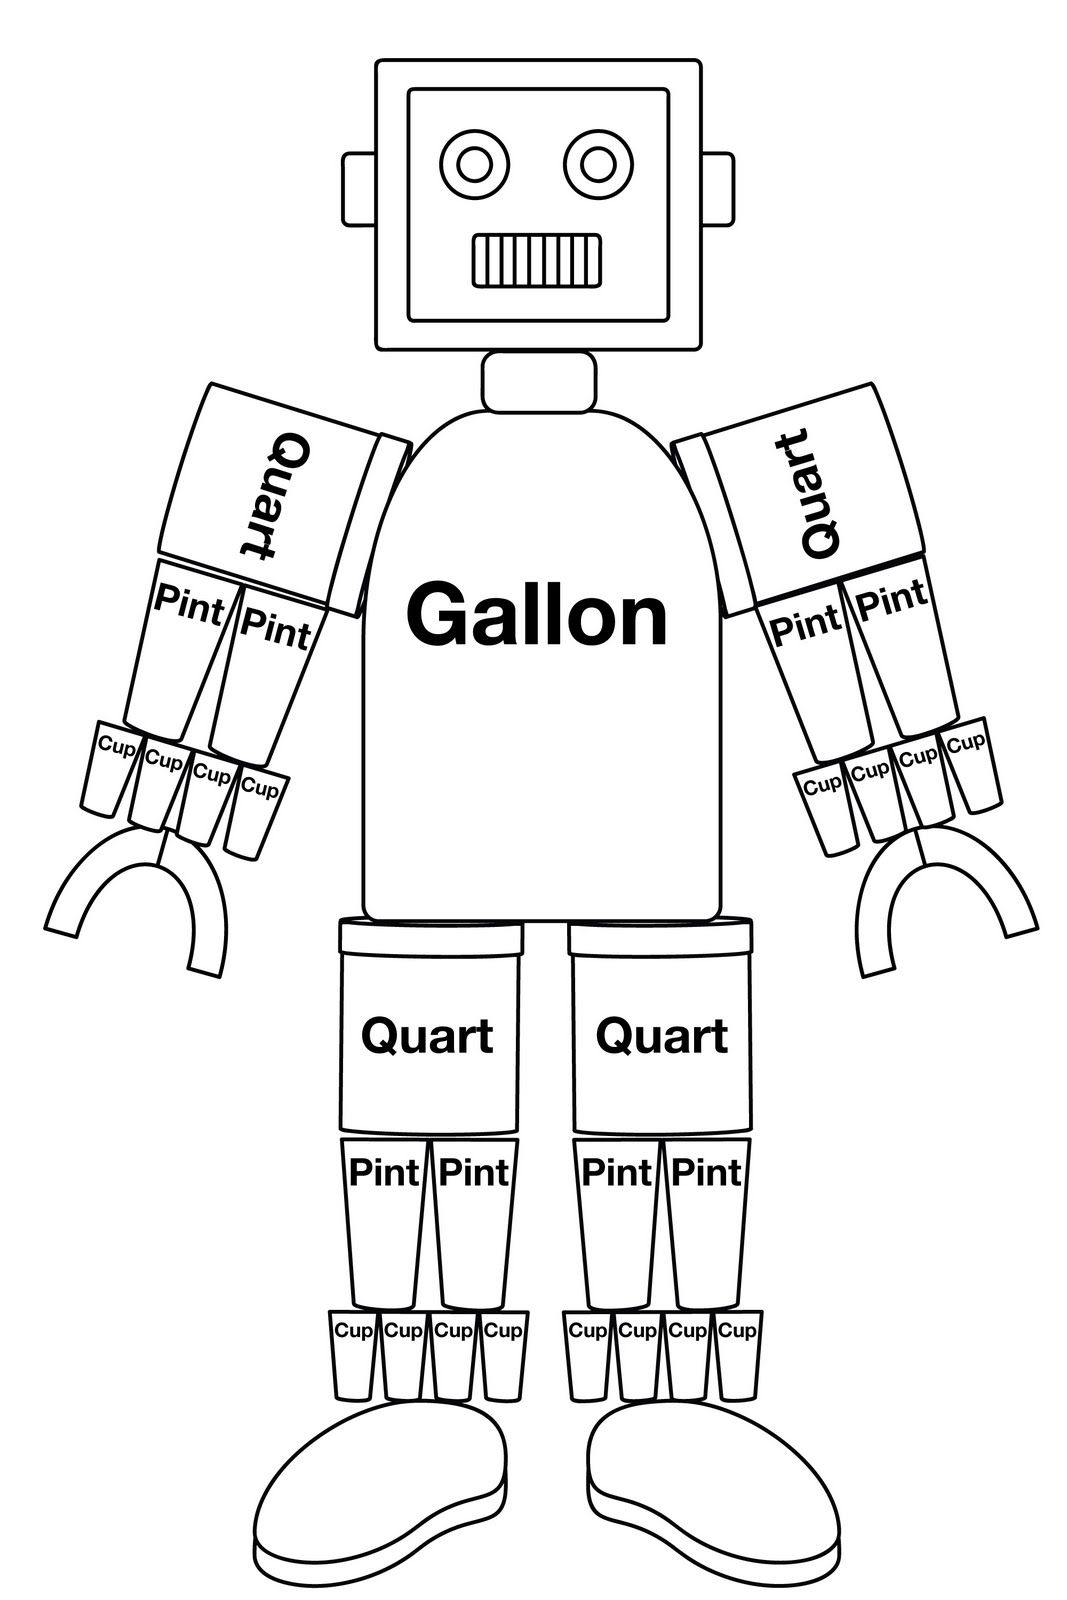 worksheet Gallon Pint Quart Cup Worksheet other graphical works education pinterest math homeschool gallon bot what a fun way to learn about volume measurements man has always been one of my favorites i still think of